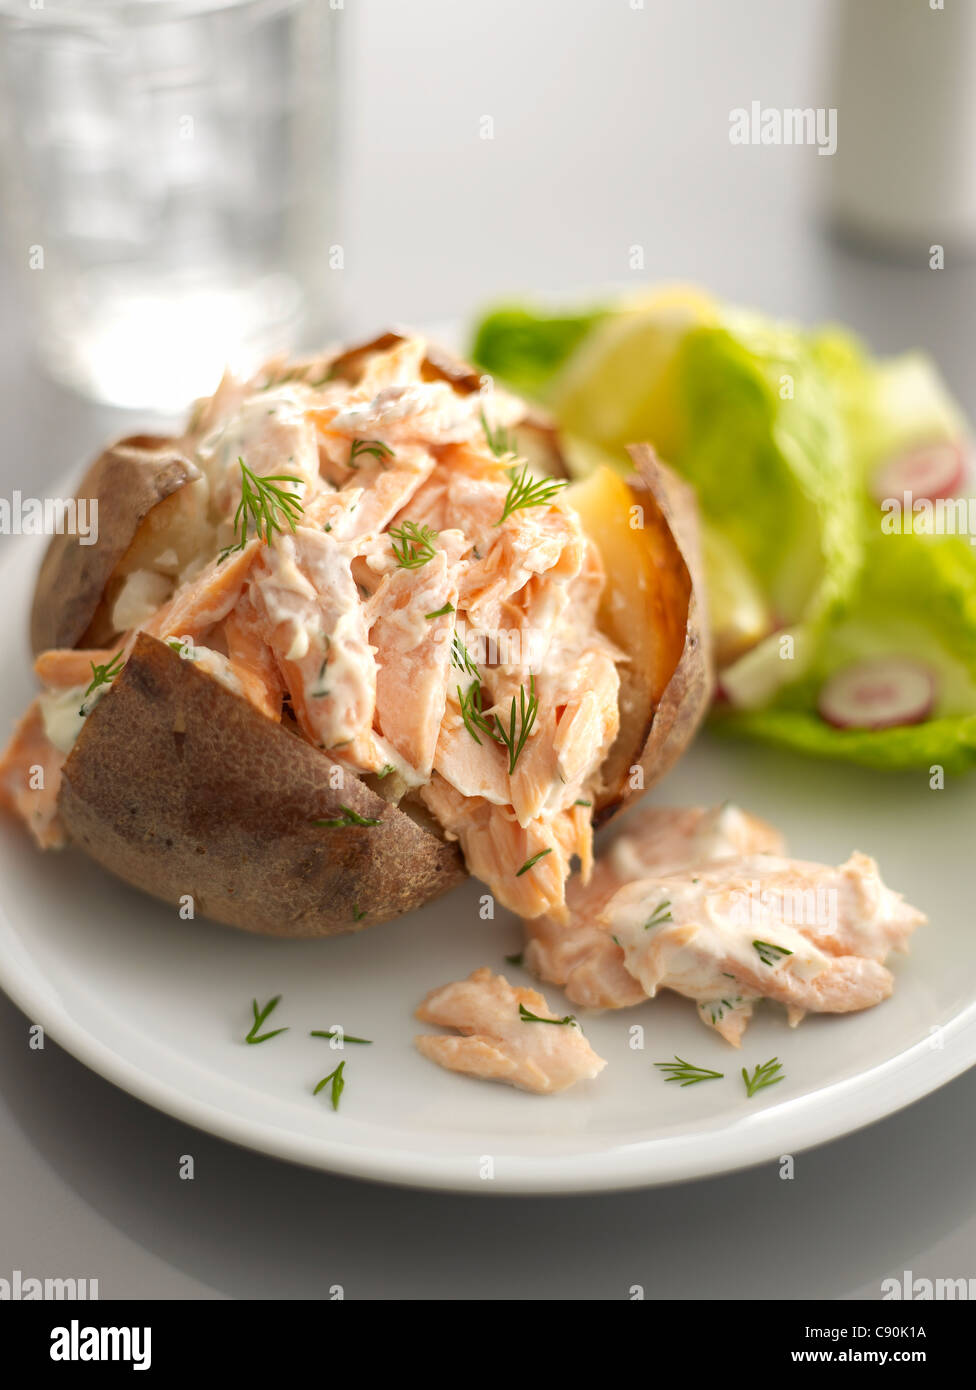 salmon, mayonnaise and fennel baked potato - Stock Image